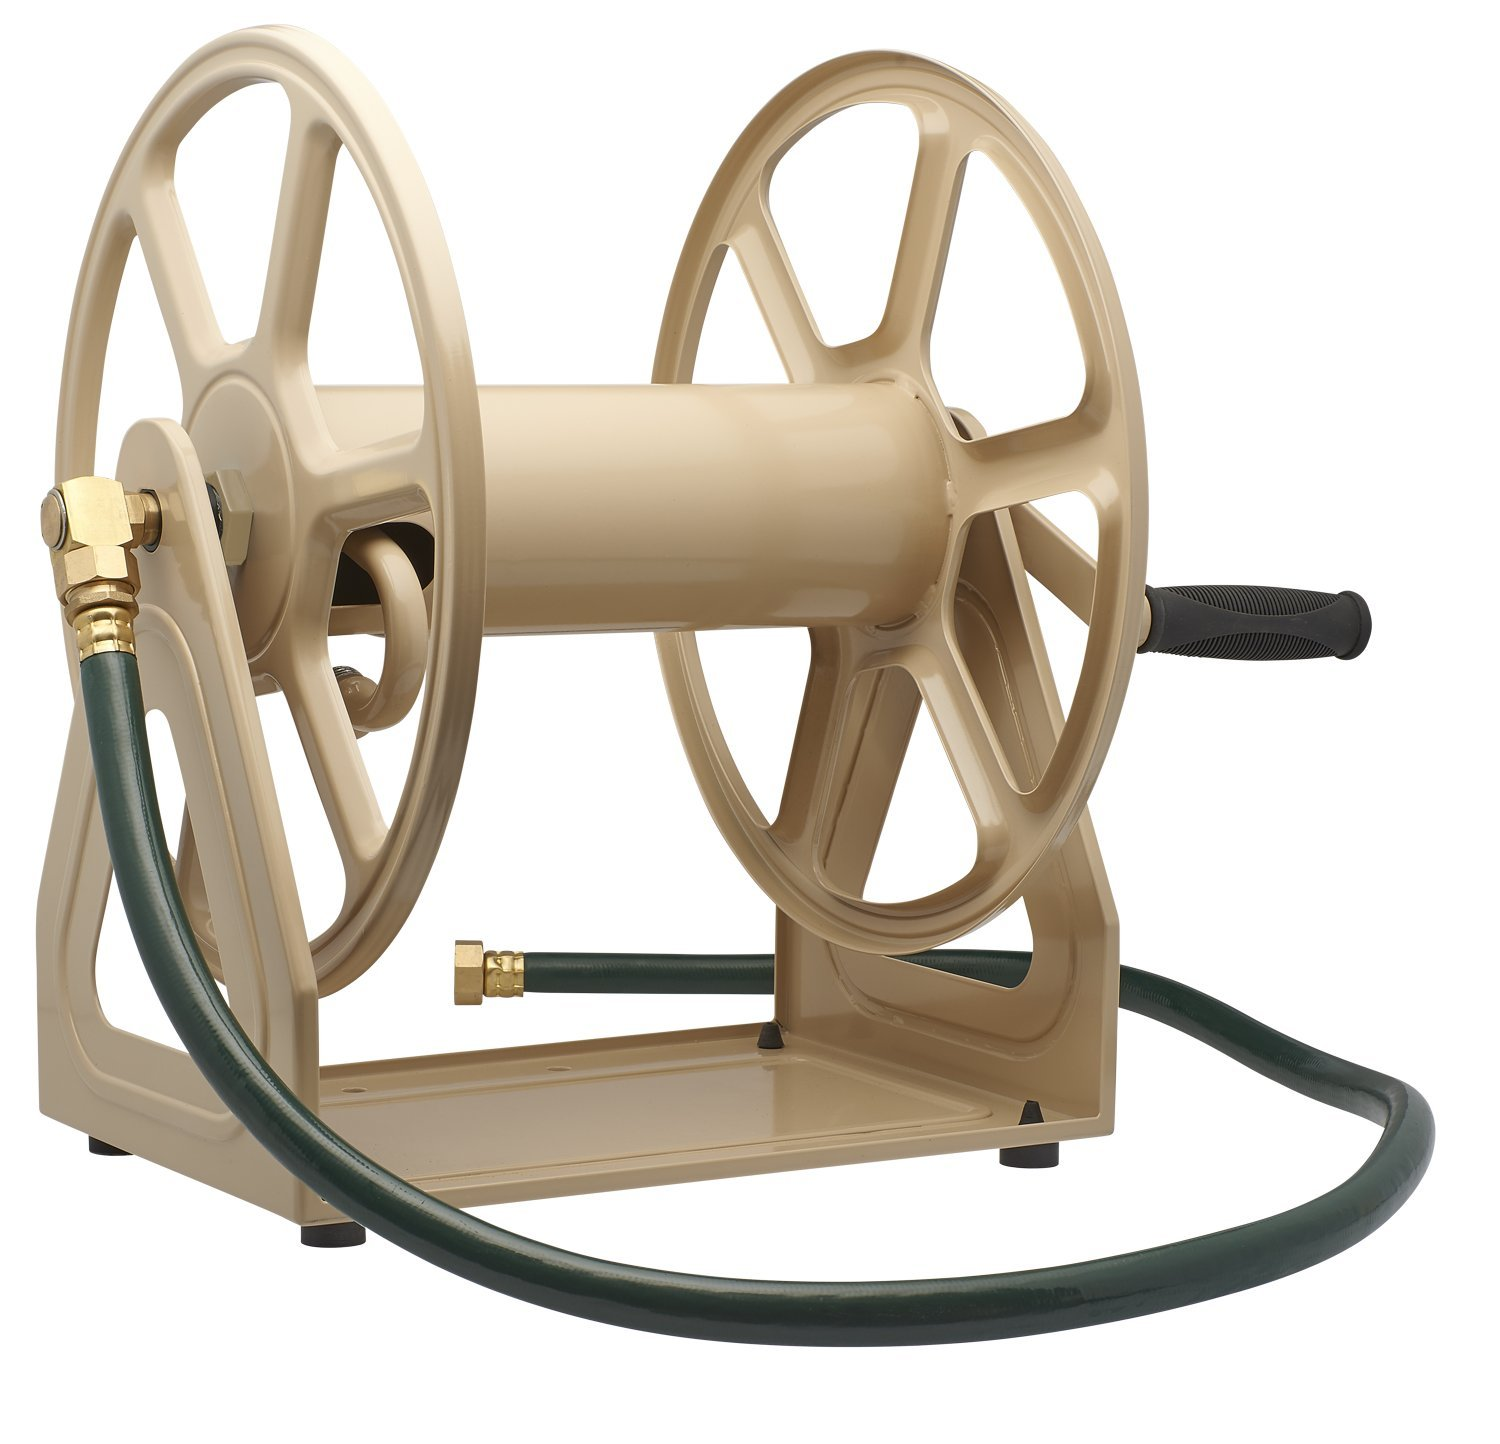 Liberty Garden 709 Steel Wall/Floor Mounted Hose Reel, Holds 200-Feet of 5/8-Inch Hose - Tan by Liberty Garden Products